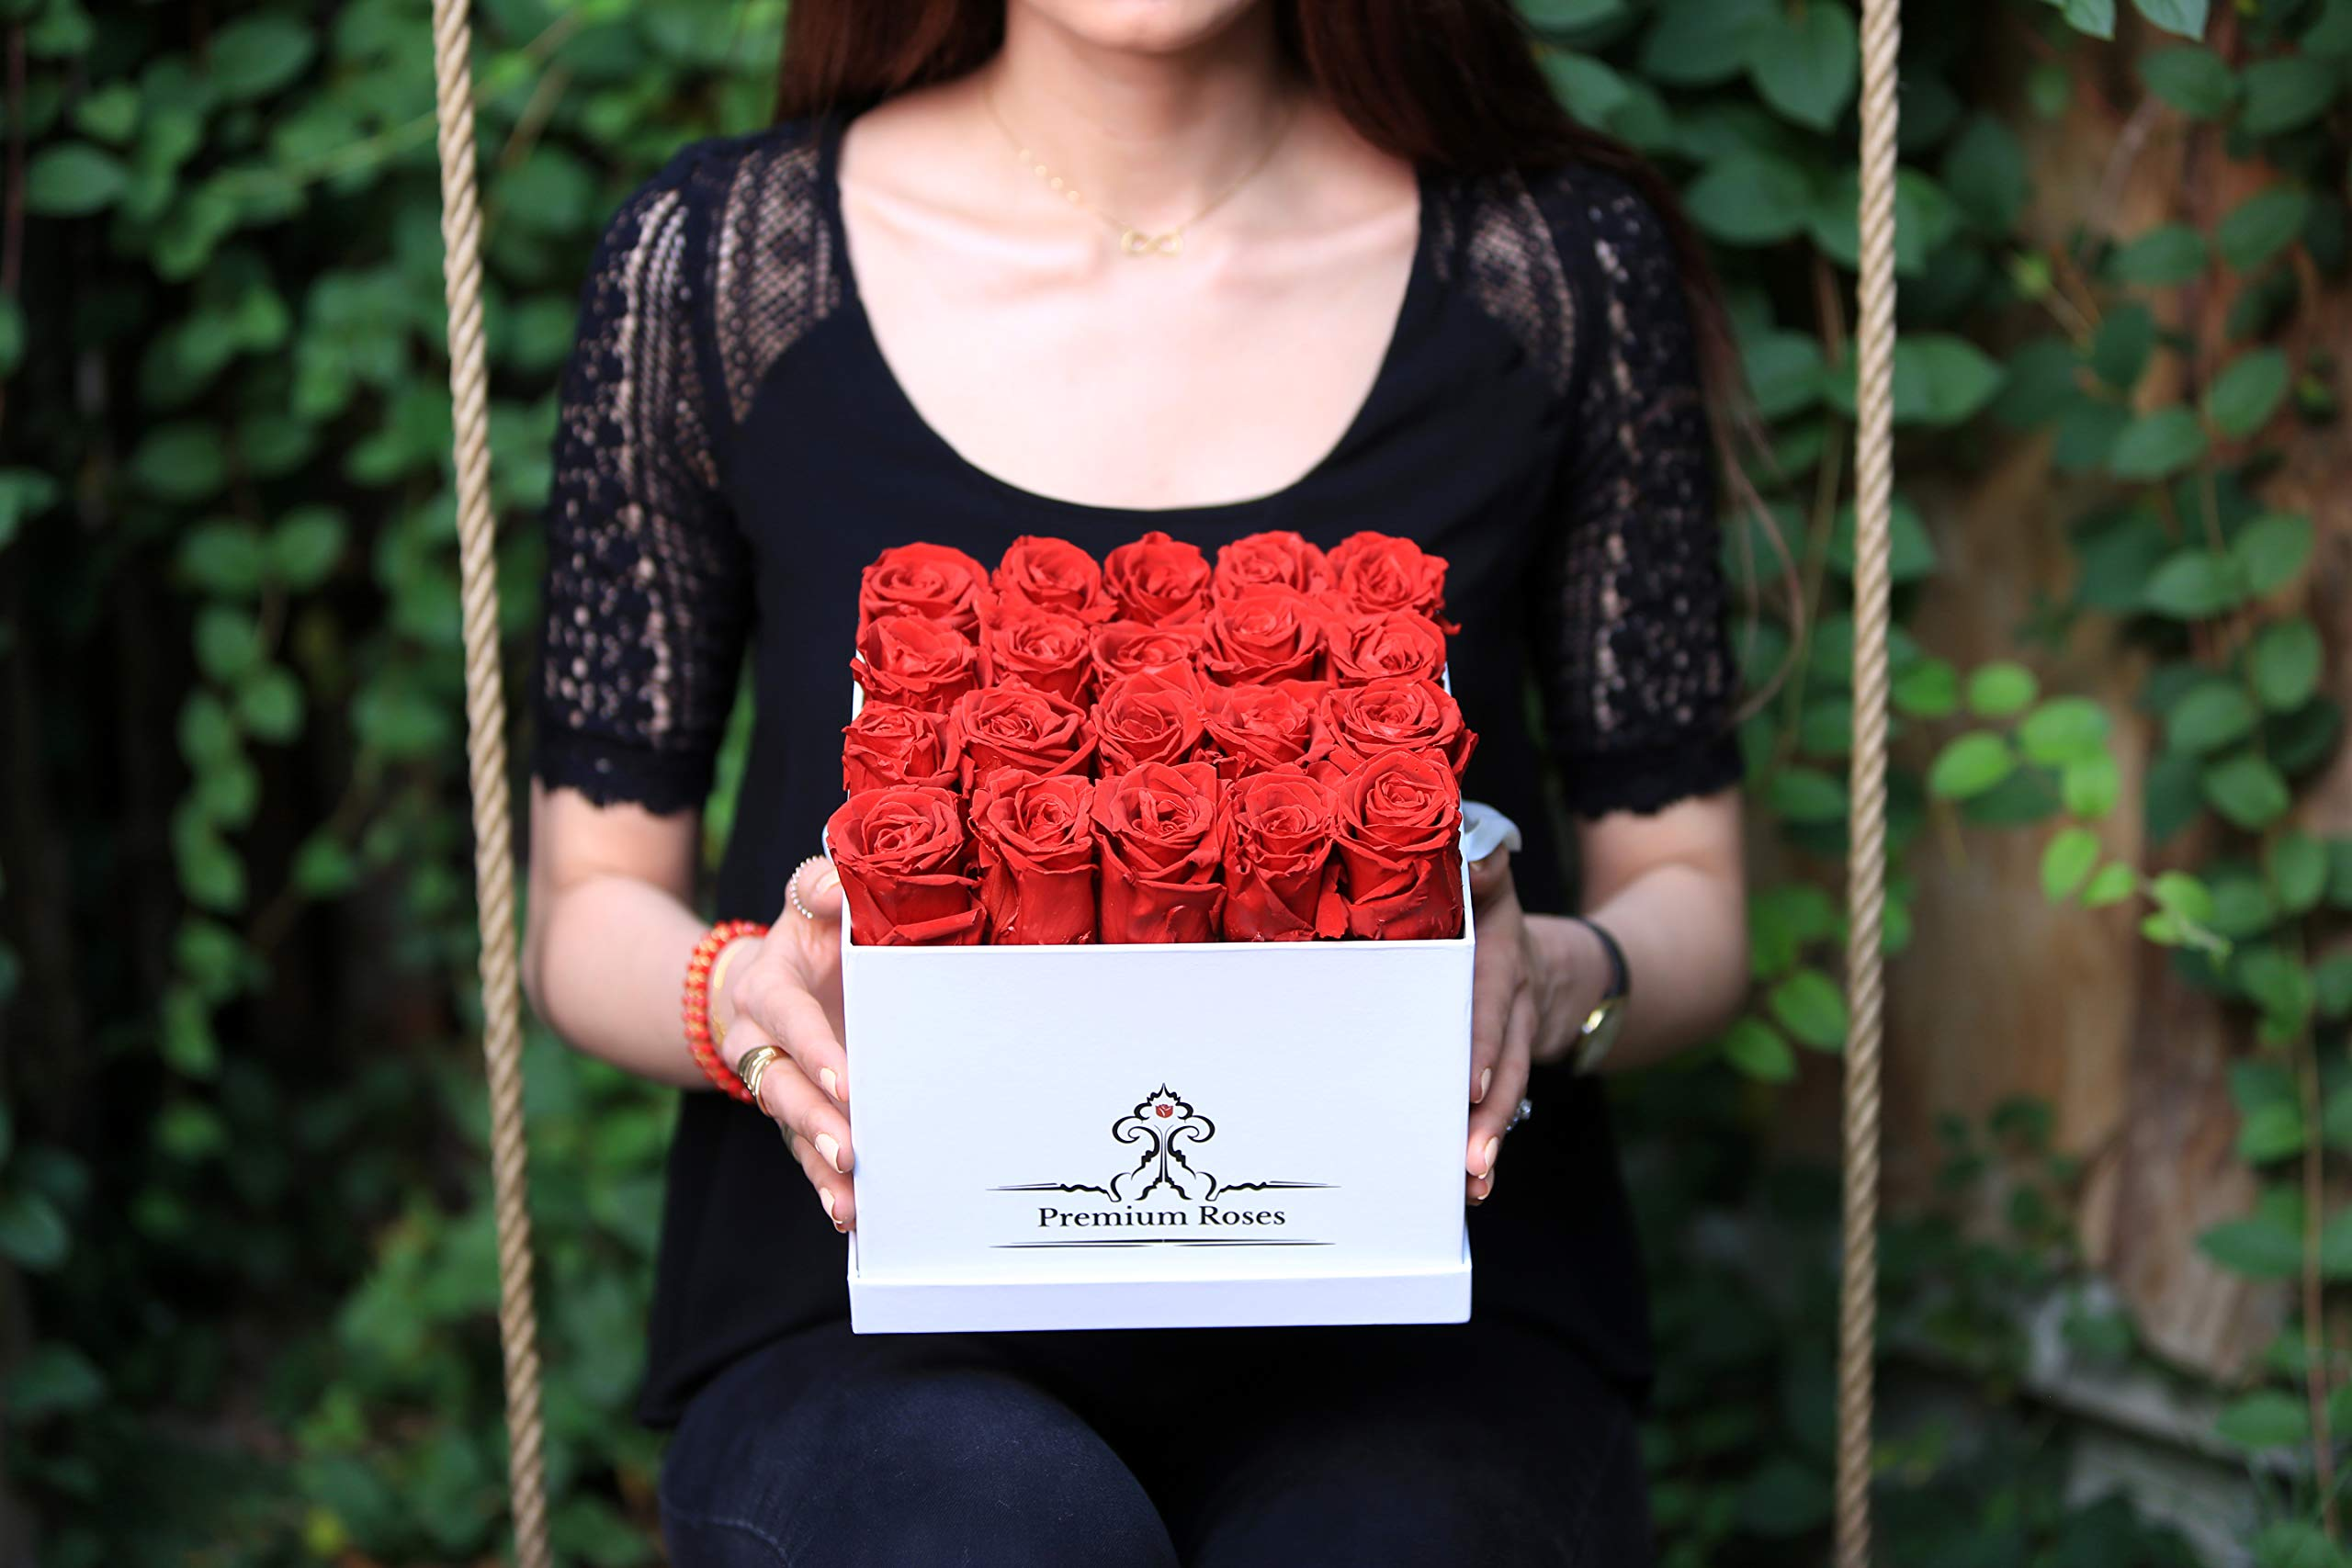 Premium Roses | Model Glossy| Real Roses That Last 365 Days | Fresh Flowers| Special Occasion, Holiday, Birthday Gift (Glossy White Box, Medium) by Premium Roses (Image #4)